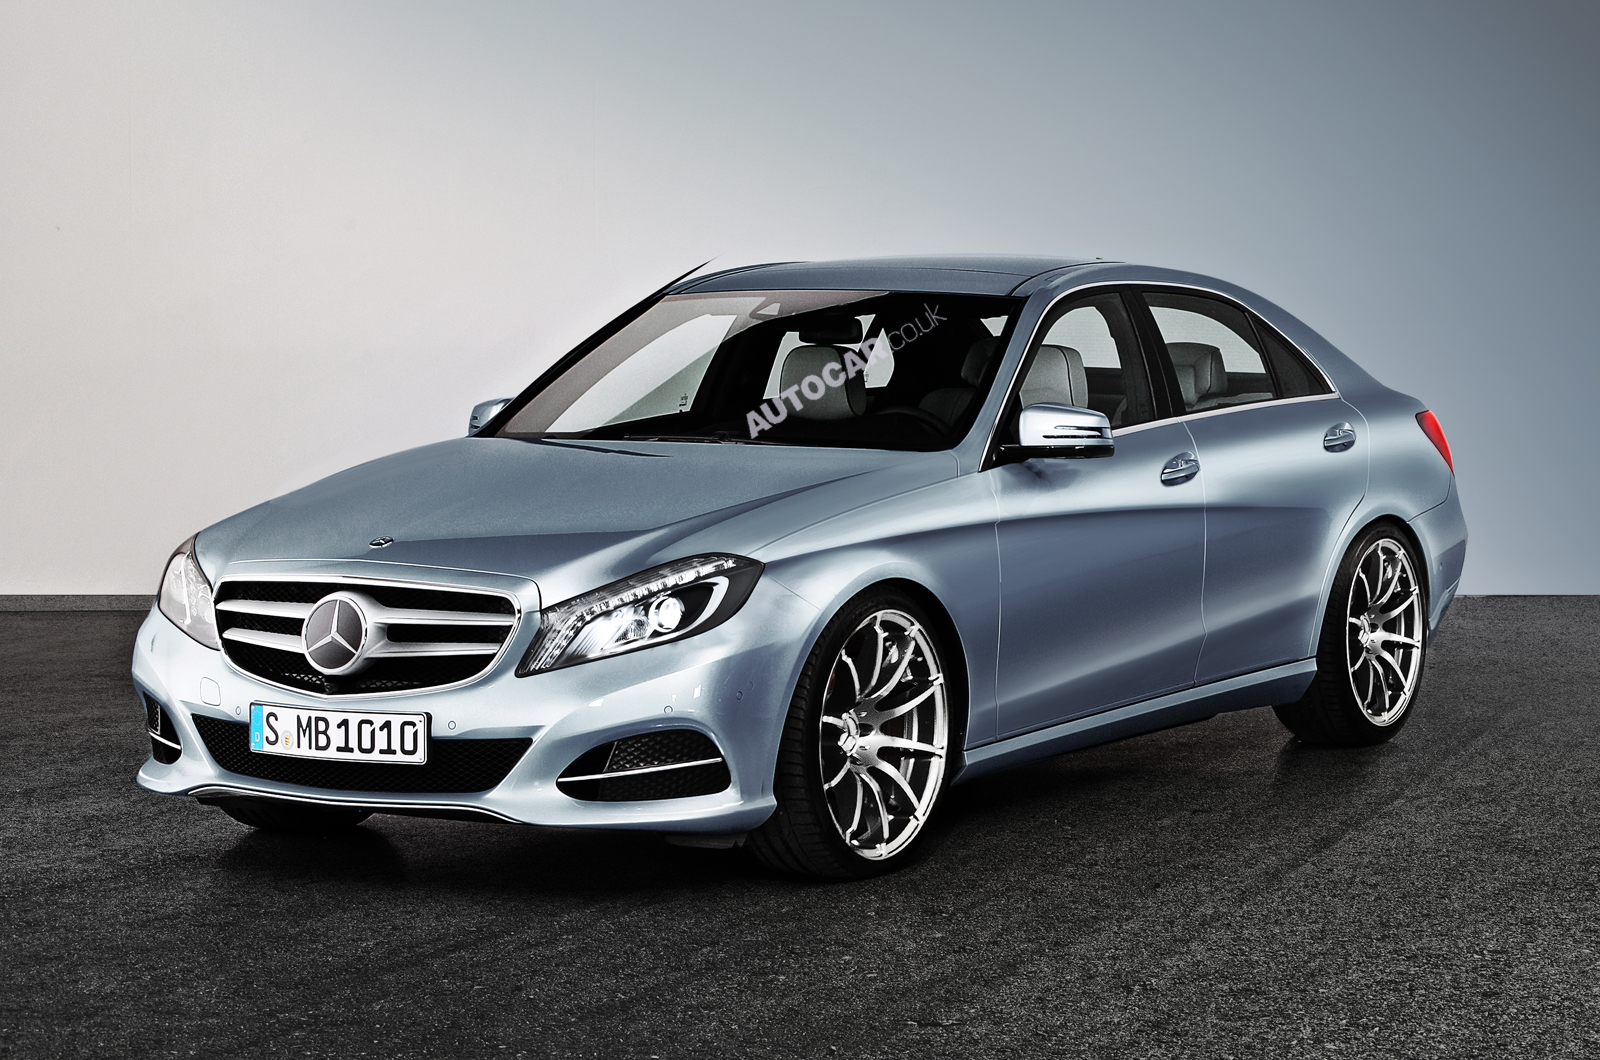 The fourth generation Mercedes-Benz C-class wallpapers High Resolution Picture